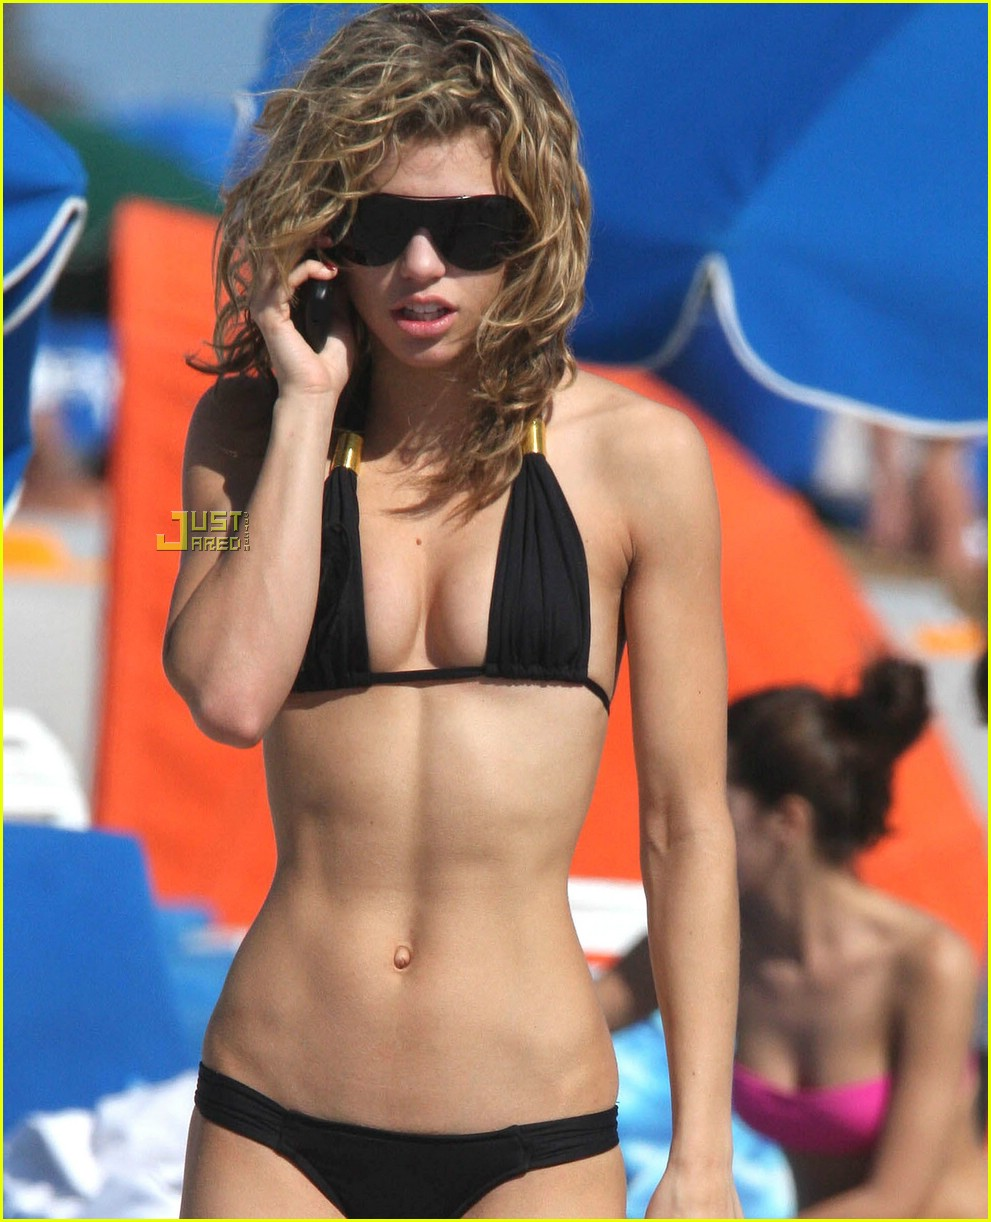 AnnaLynne McCord: Bangin' Bikini Body!!!: Photo 1627891 ... Blake Lively Ring